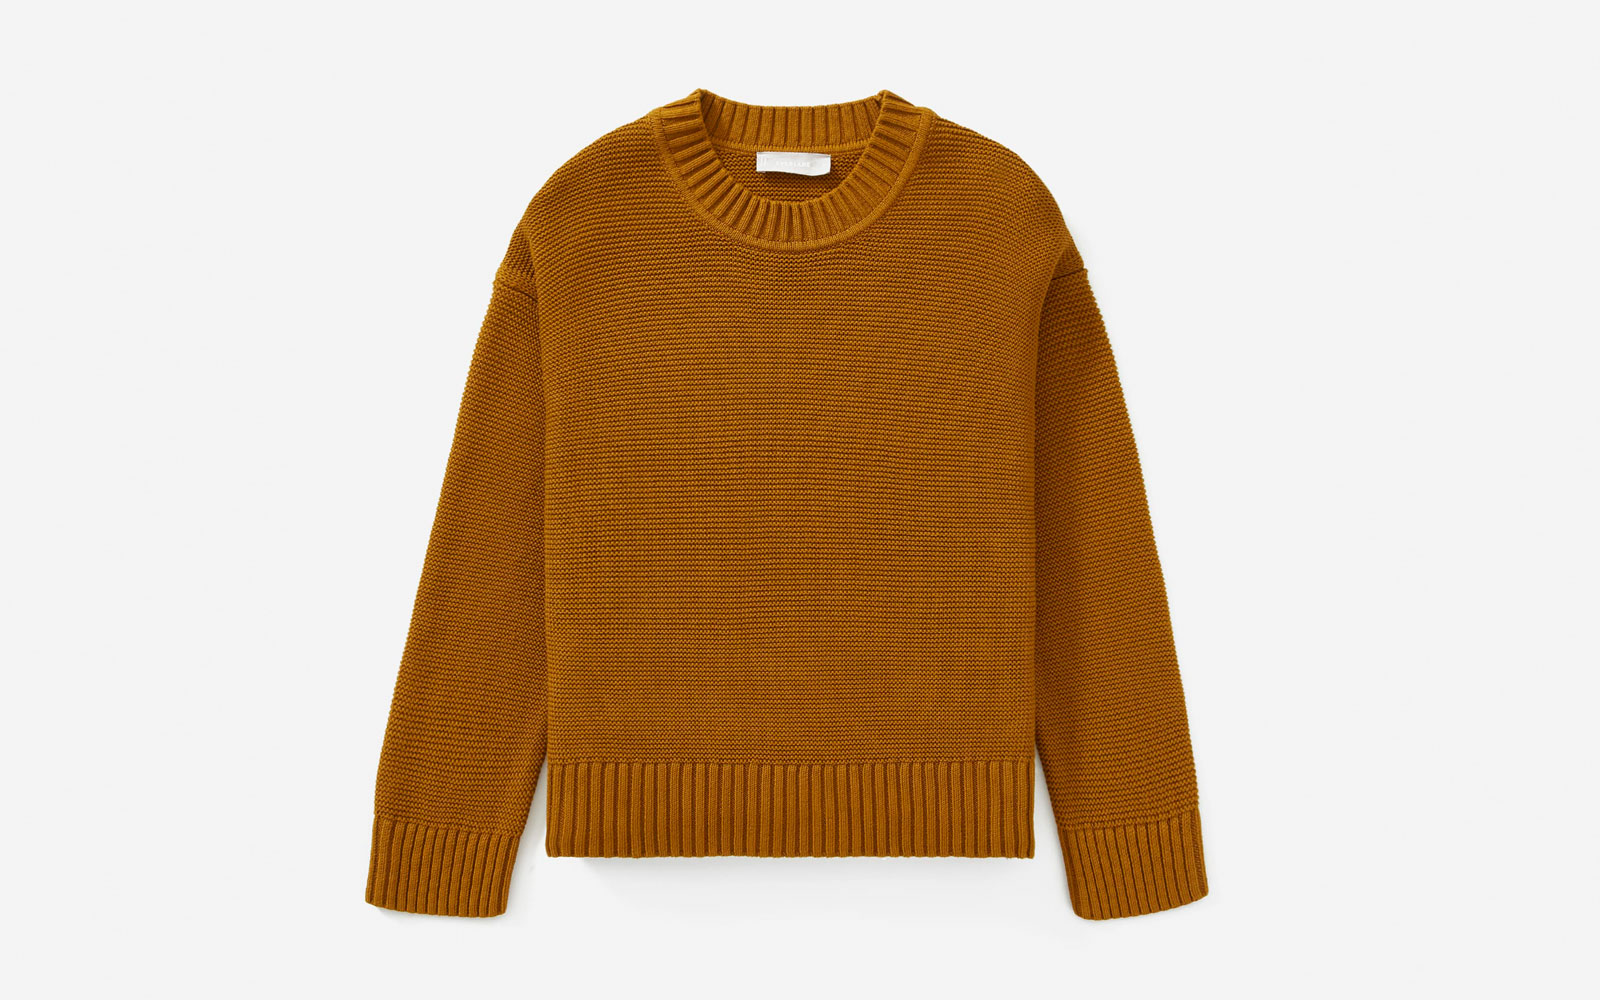 Brown/Tan Crewneck Sweater